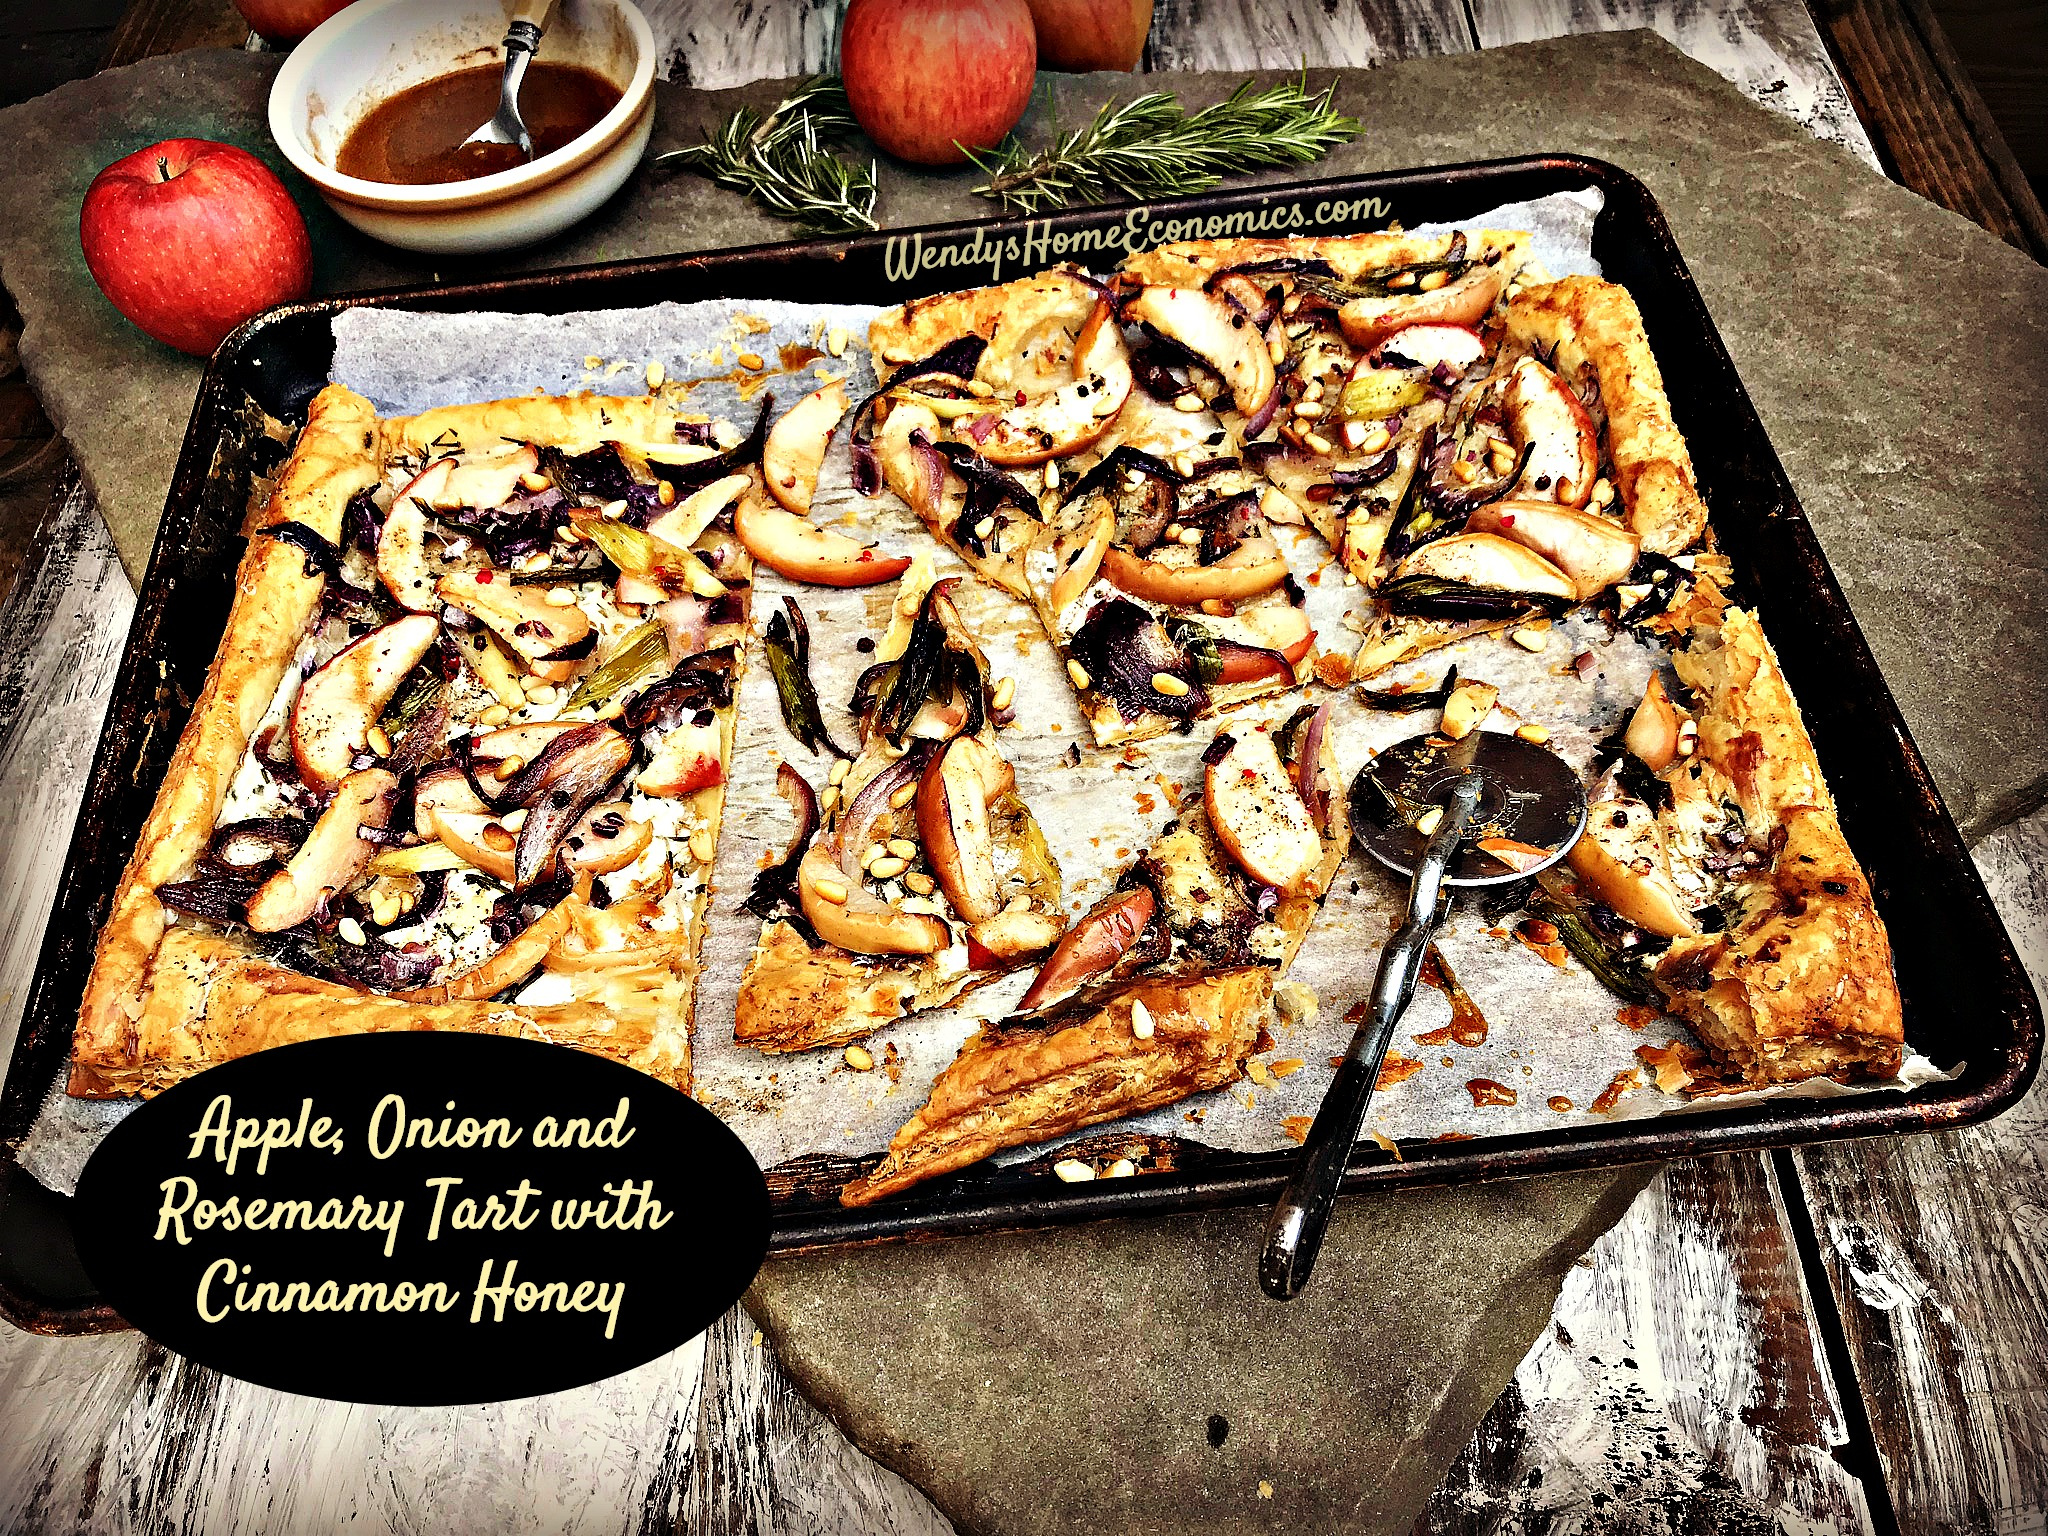 Apple, Onions & Rosemary Tart